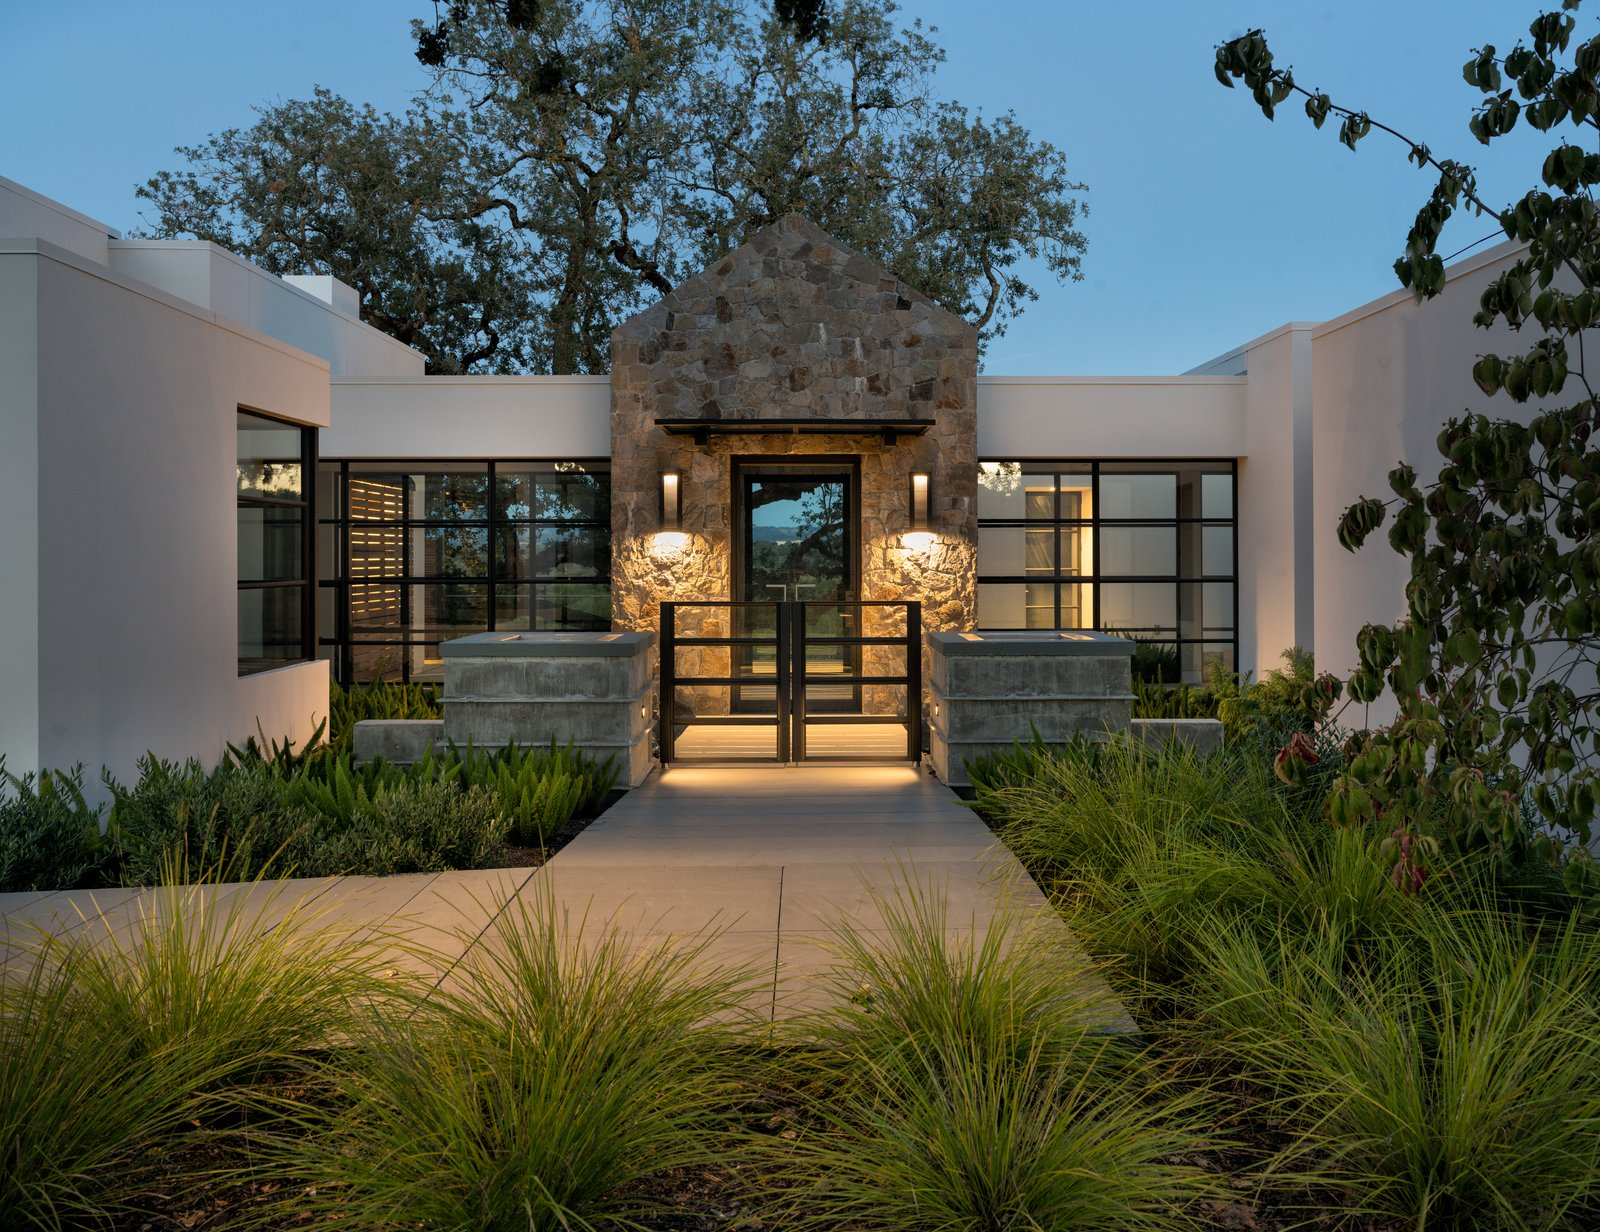 Outdoor, Trees, Grass, Shrubs, Landscape Lighting, Concrete Patio, Porch, Deck, Hardscapes, Back Yard, and Garden A warmly welcoming entrance to the home  Hilltop Haven by Randy Thueme Design